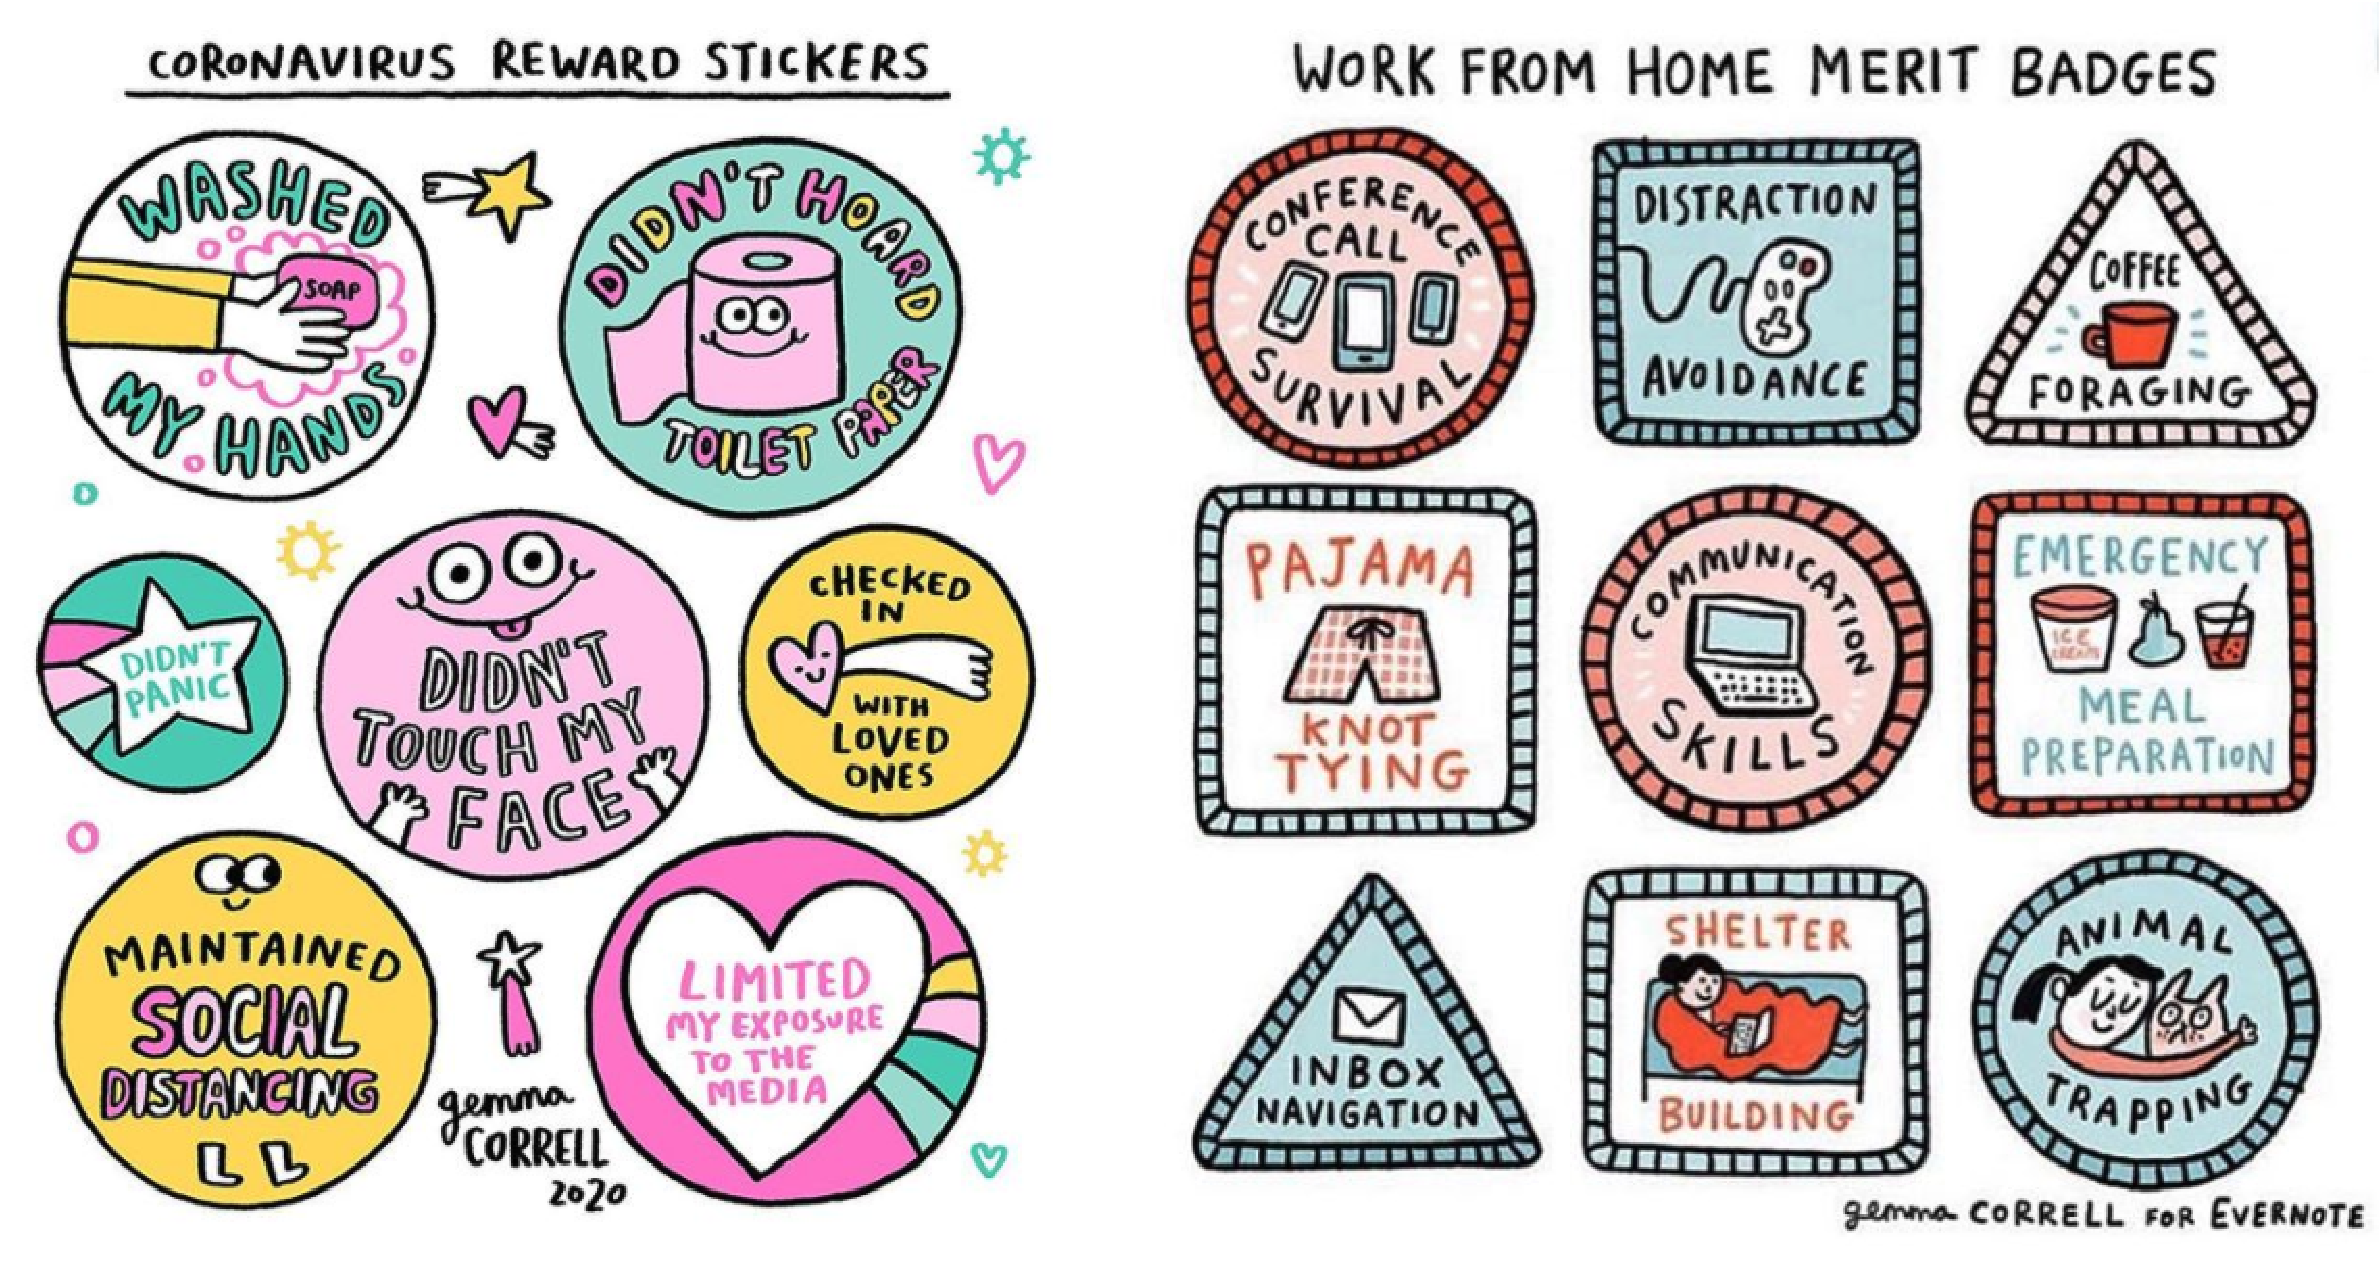 Adorable Coronavirus reward stickers from cartoonist Gemma Correll